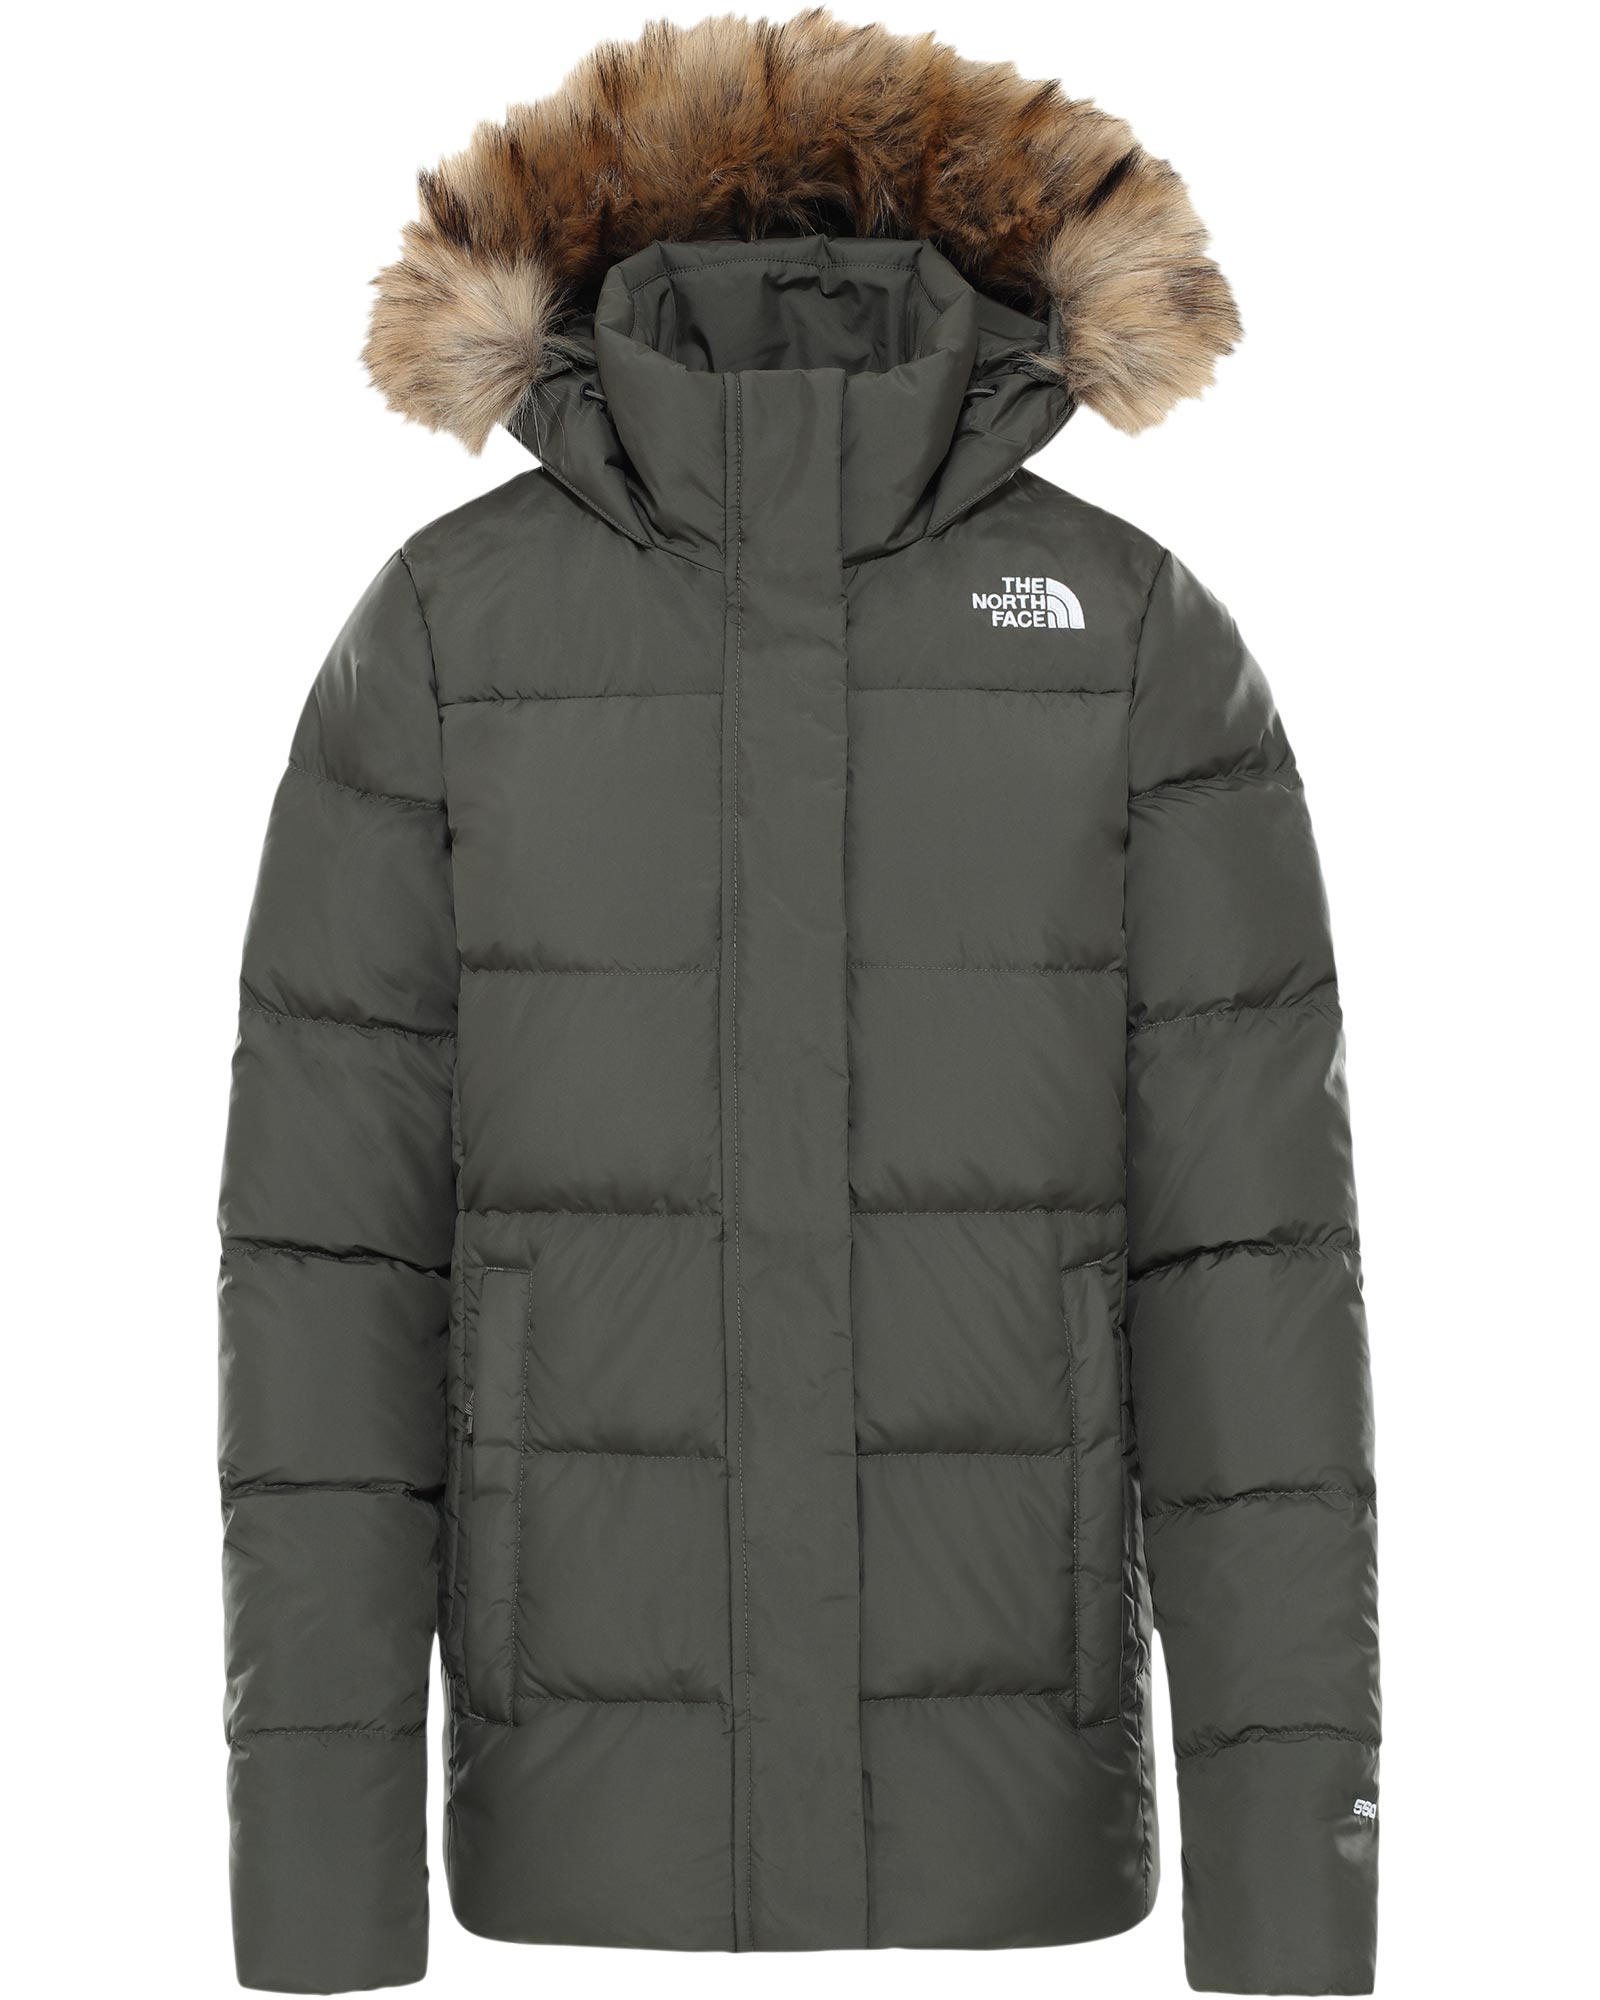 The North Face Women's Gotham Jacket 0